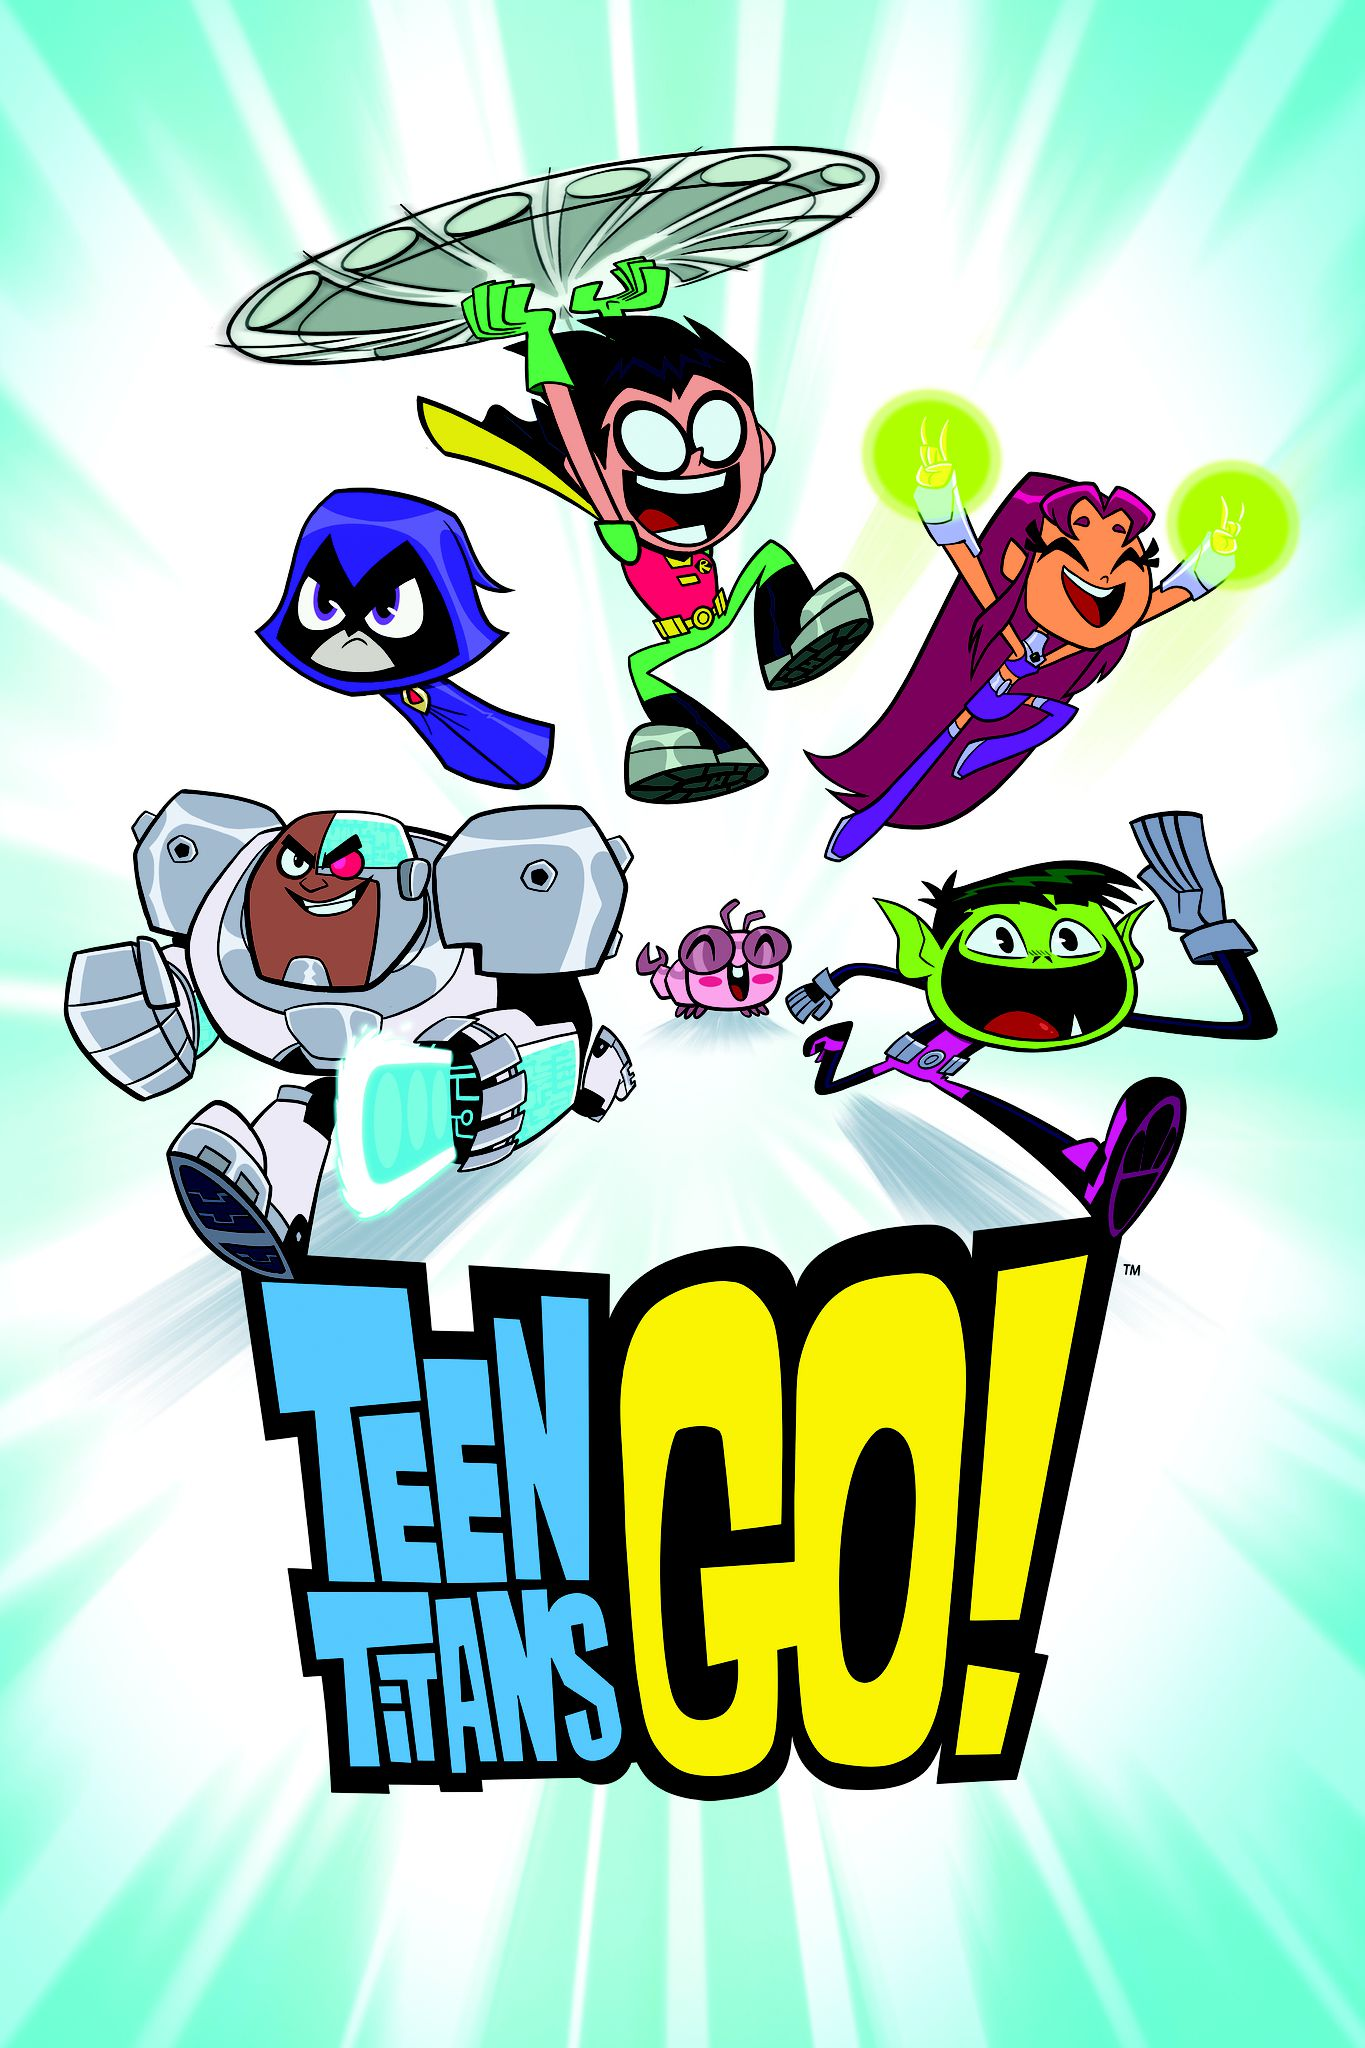 Teen Titans Go! - Anime (2013) streaming VF gratuit complet